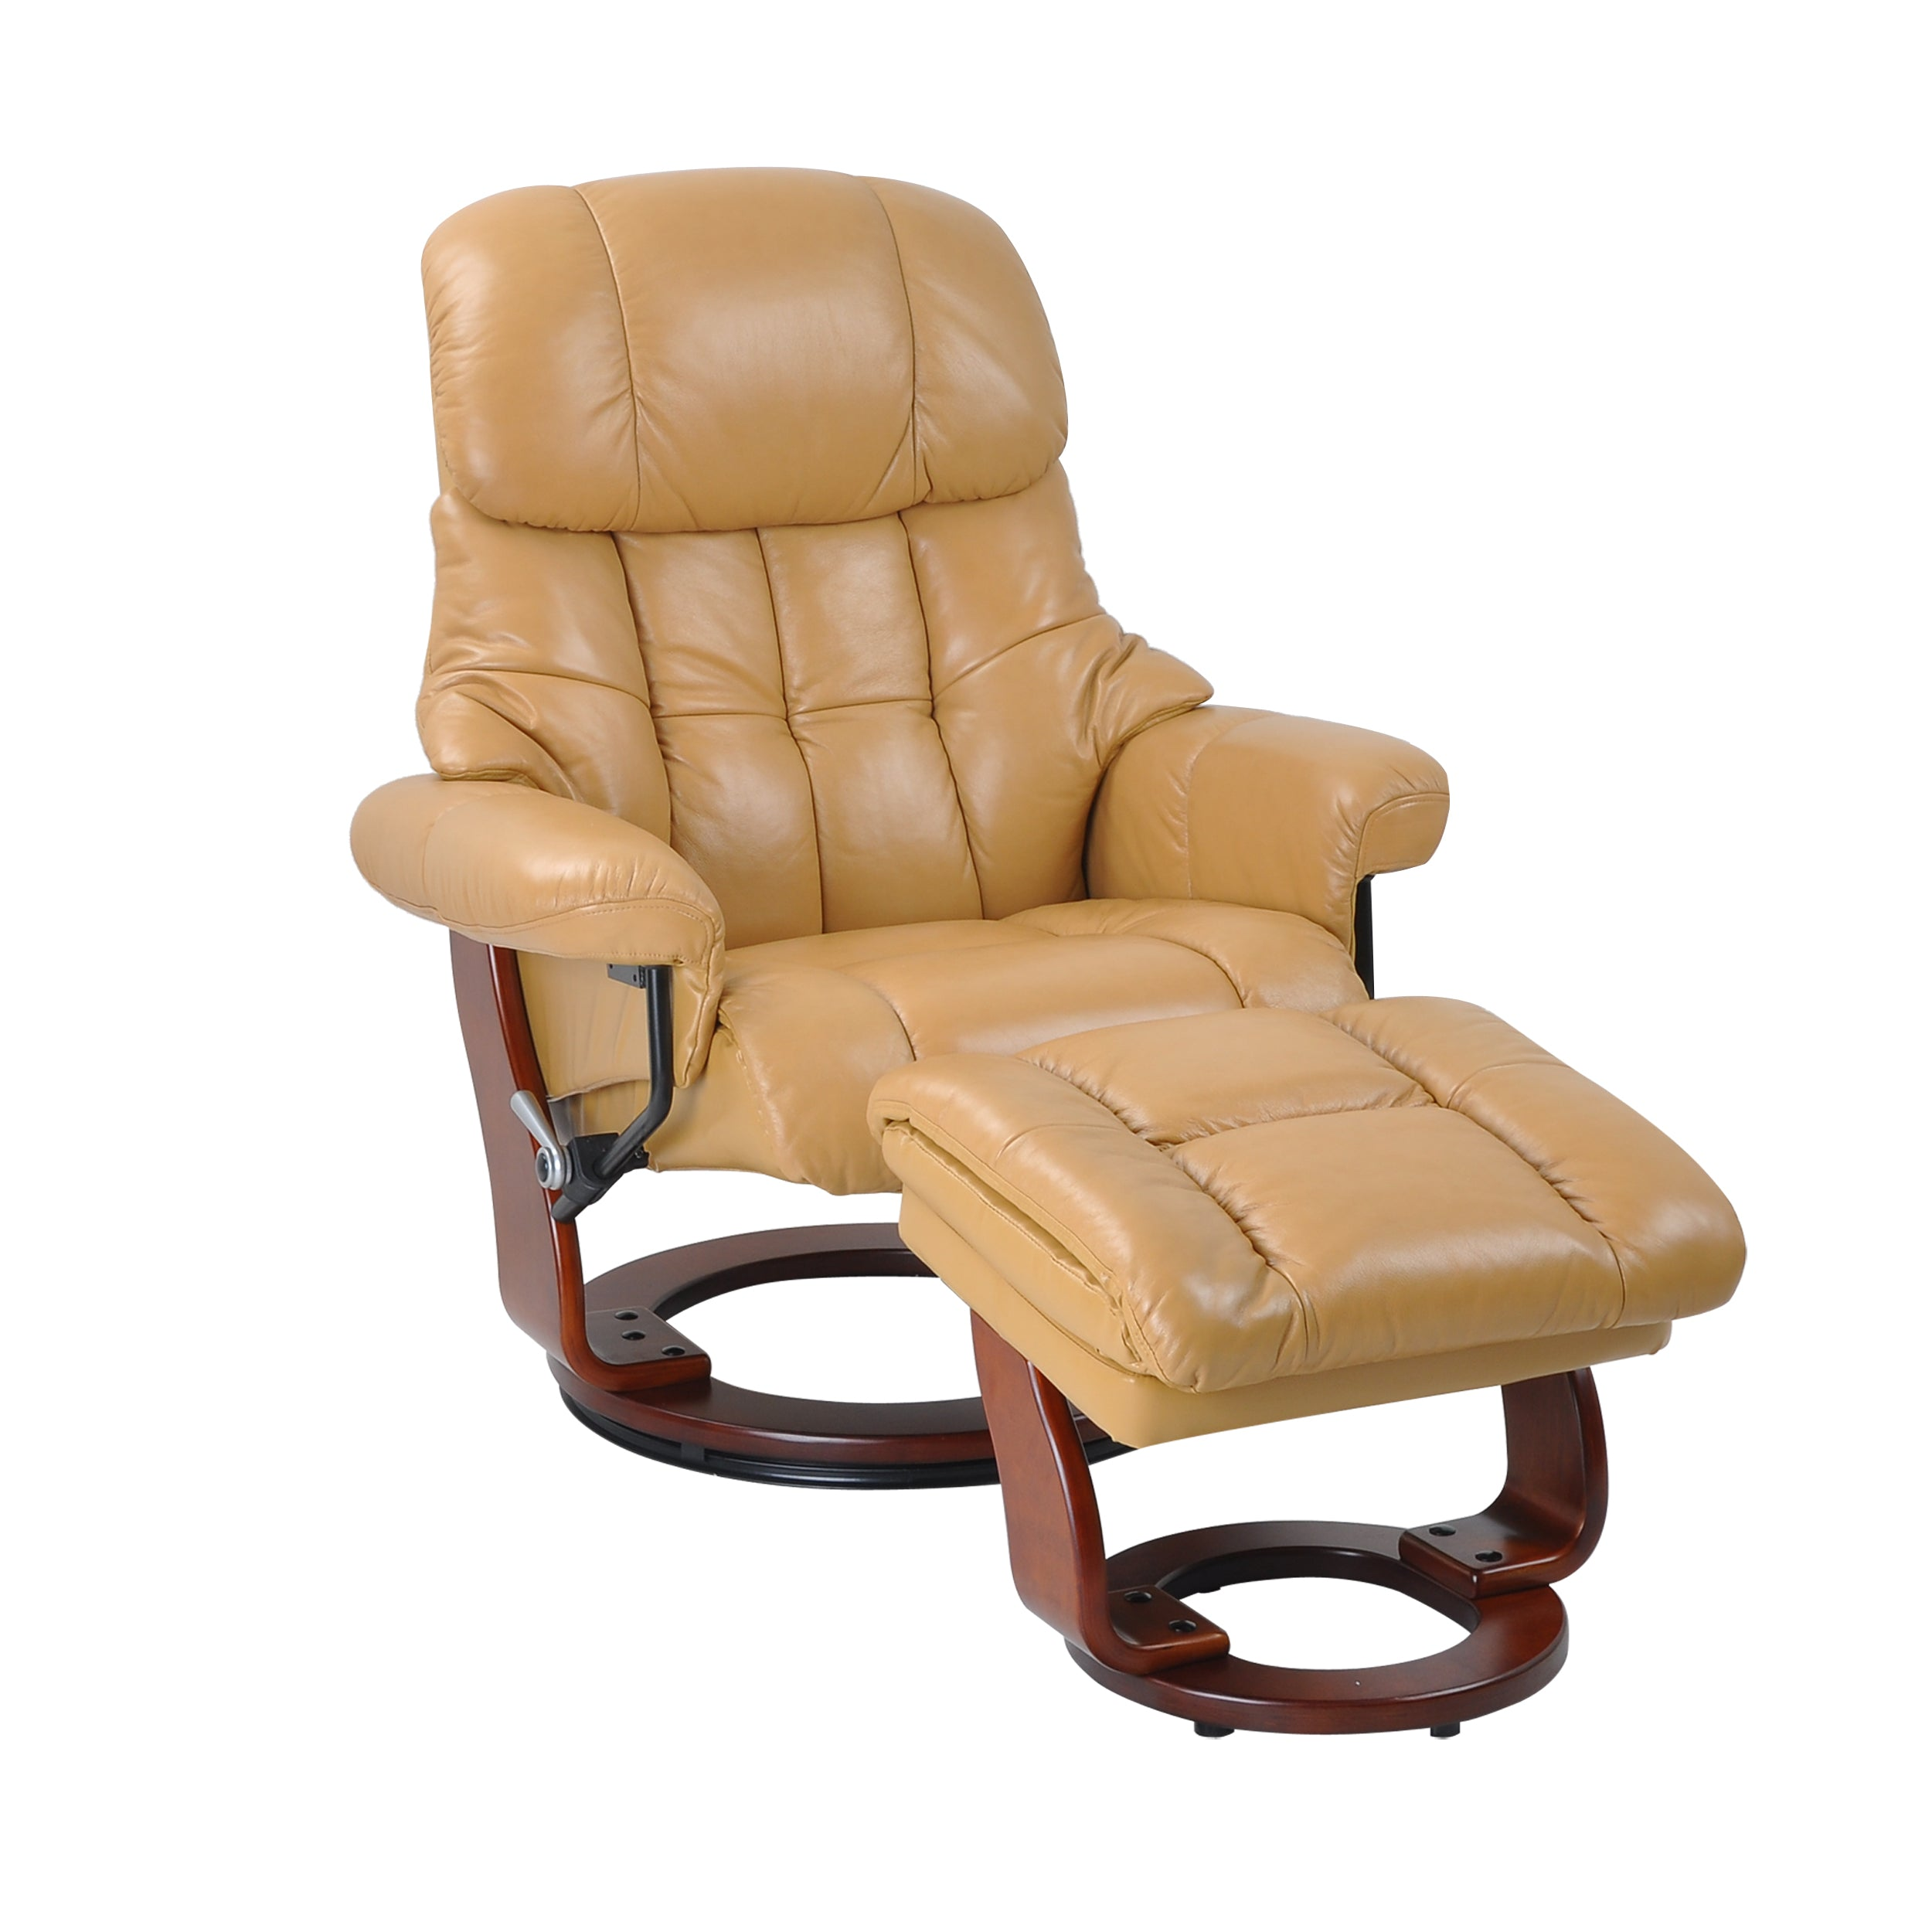 Nicholas Stress Free Leather Recliner